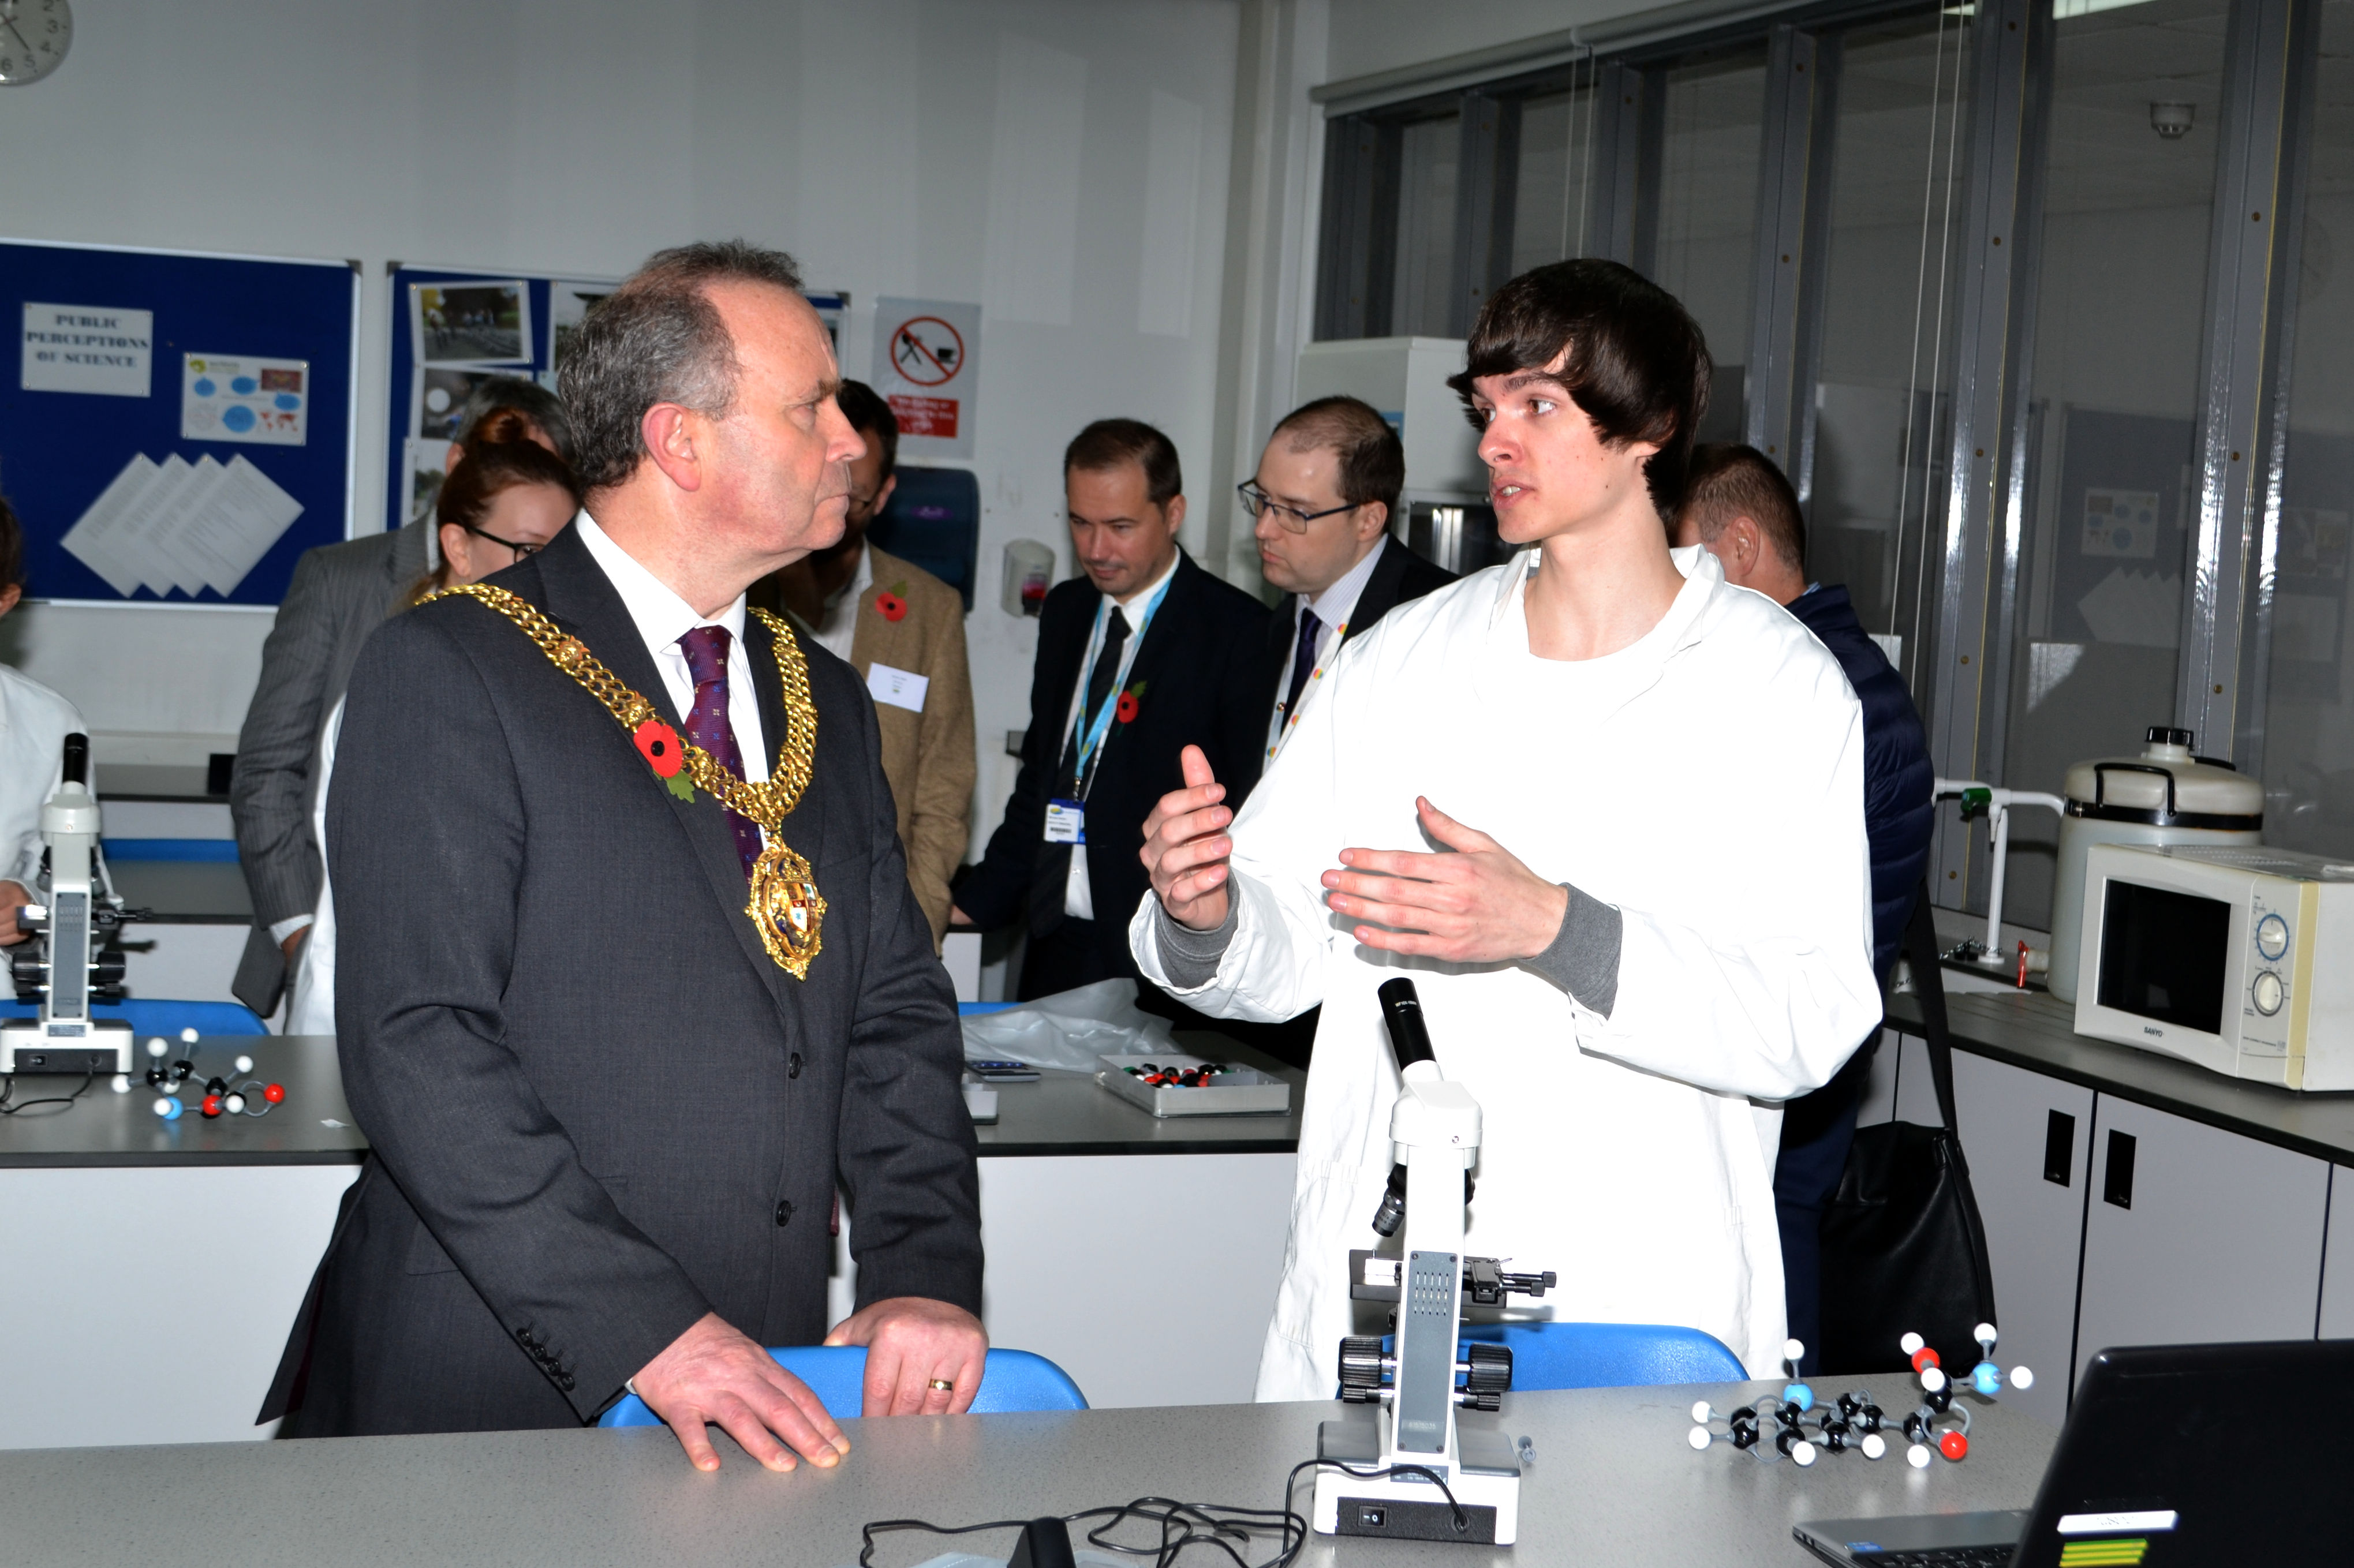 Wirral Mayor Councillor Pat Hackett speaks with Wirral Met STEM student